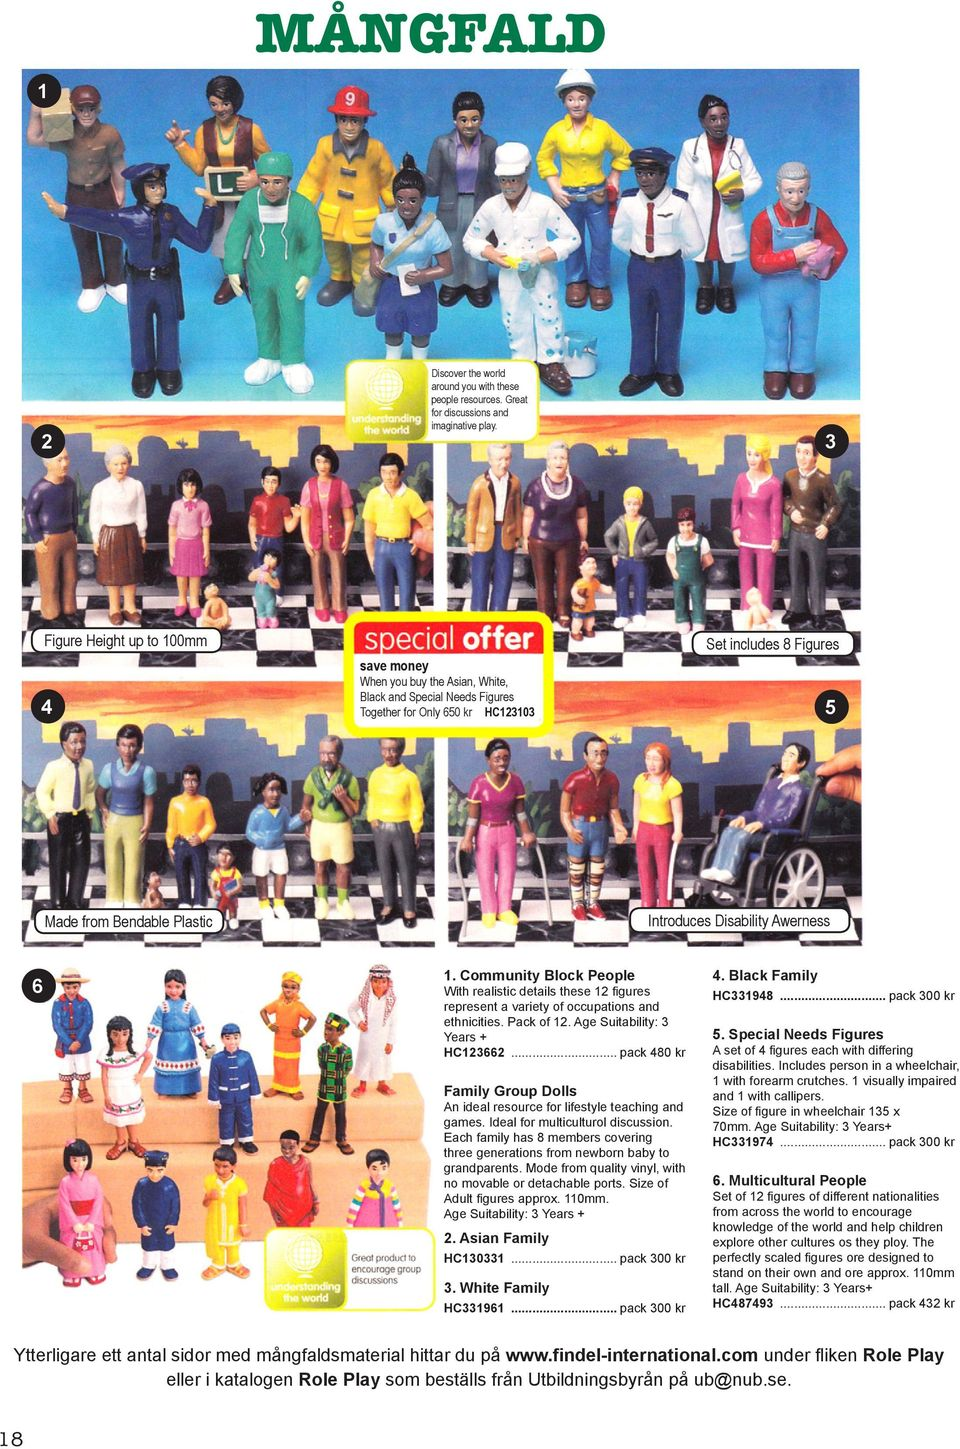 Introduces Disability Awerness 6 1. Community Block People With realistic details these 12 figures represent a variety of occupations and ethnicities. Pack of 12. Age Suitability: 3 Years + HC123662.